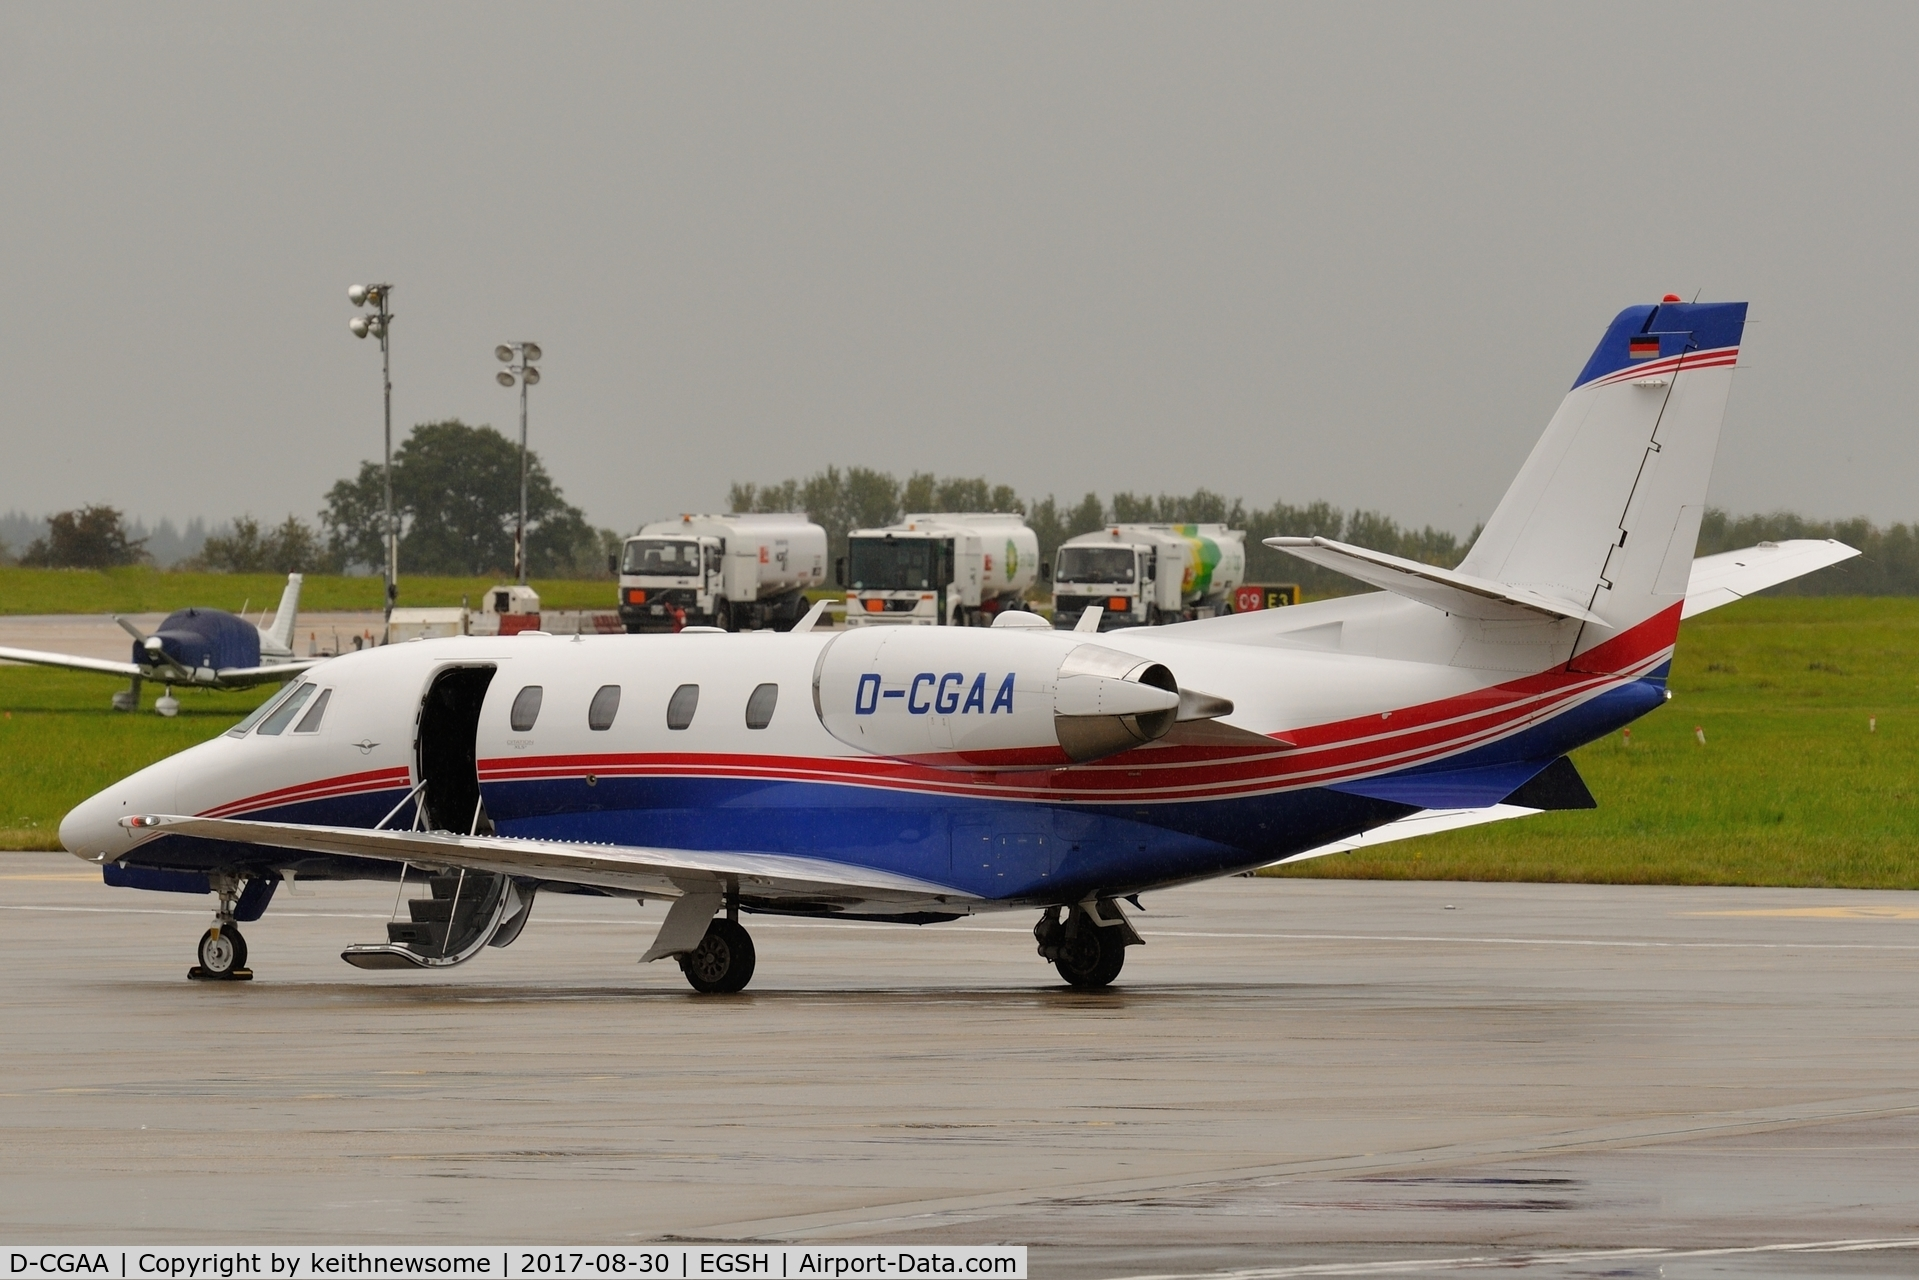 D-CGAA, 2014 Cessna 560 Citation Excel XLS+ C/N 560-6173, Parked at wet Norwich.